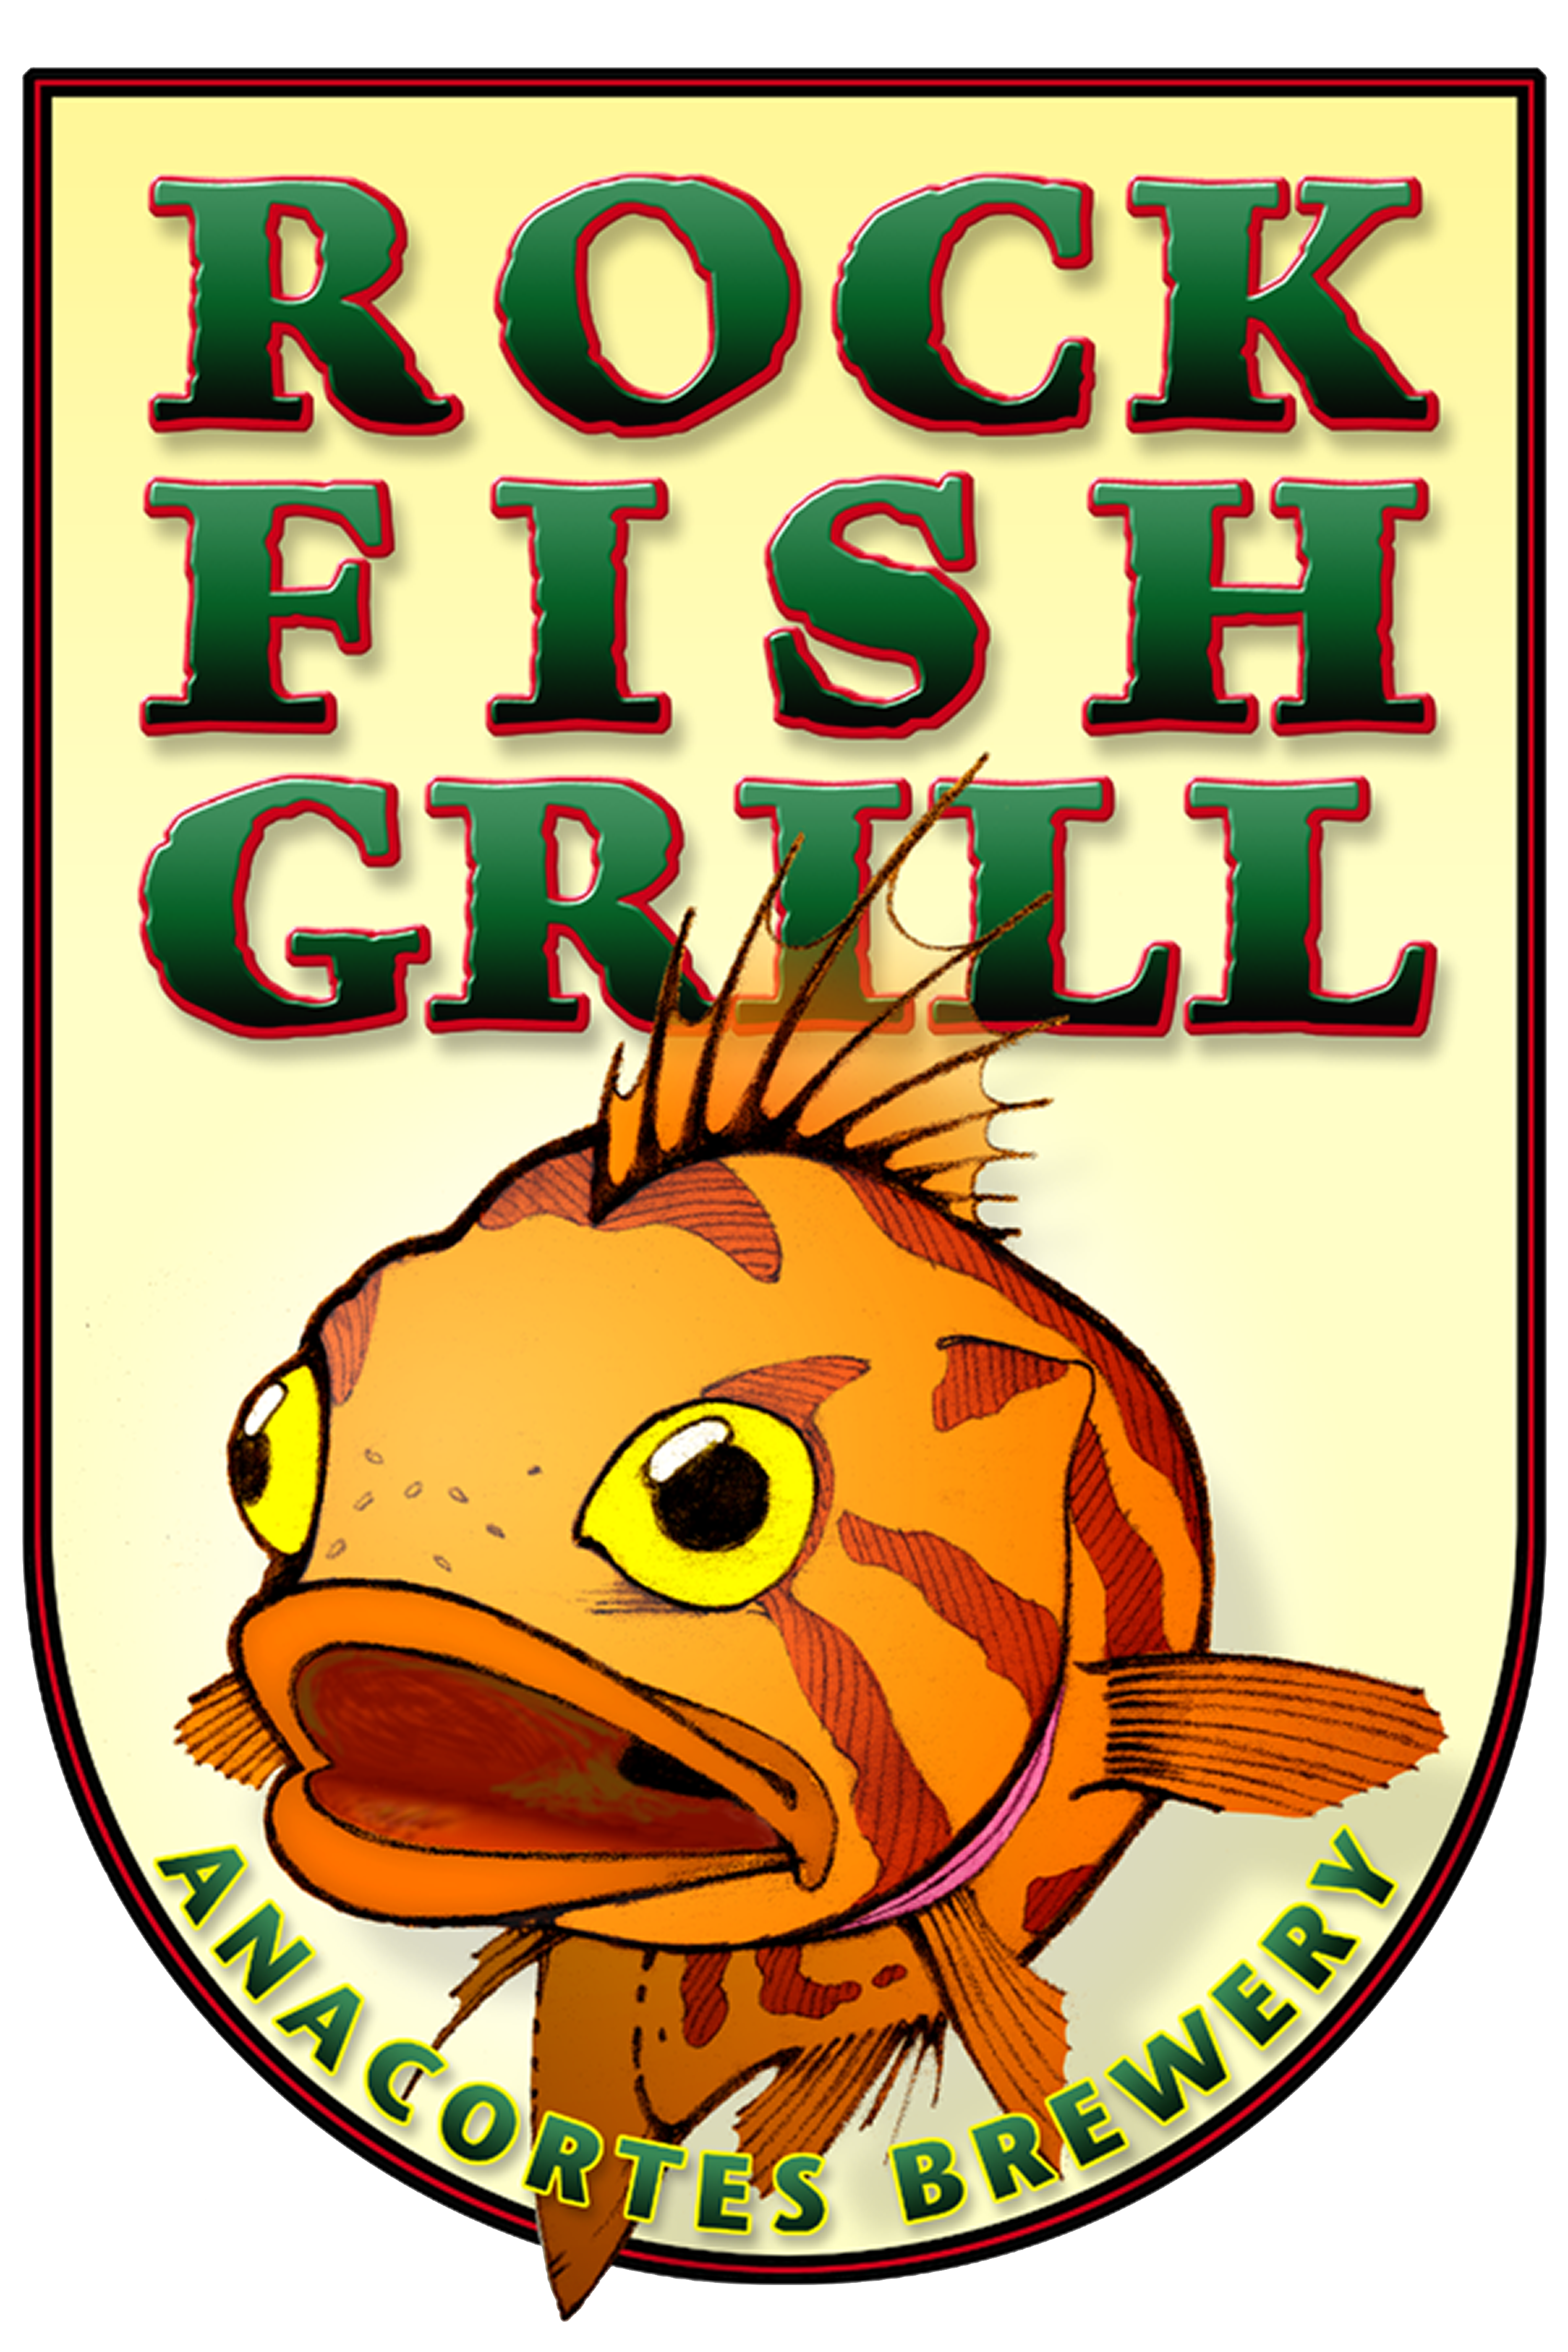 Menu - The Rockfish Grill - Pizza, Seafood, Beer, & Live